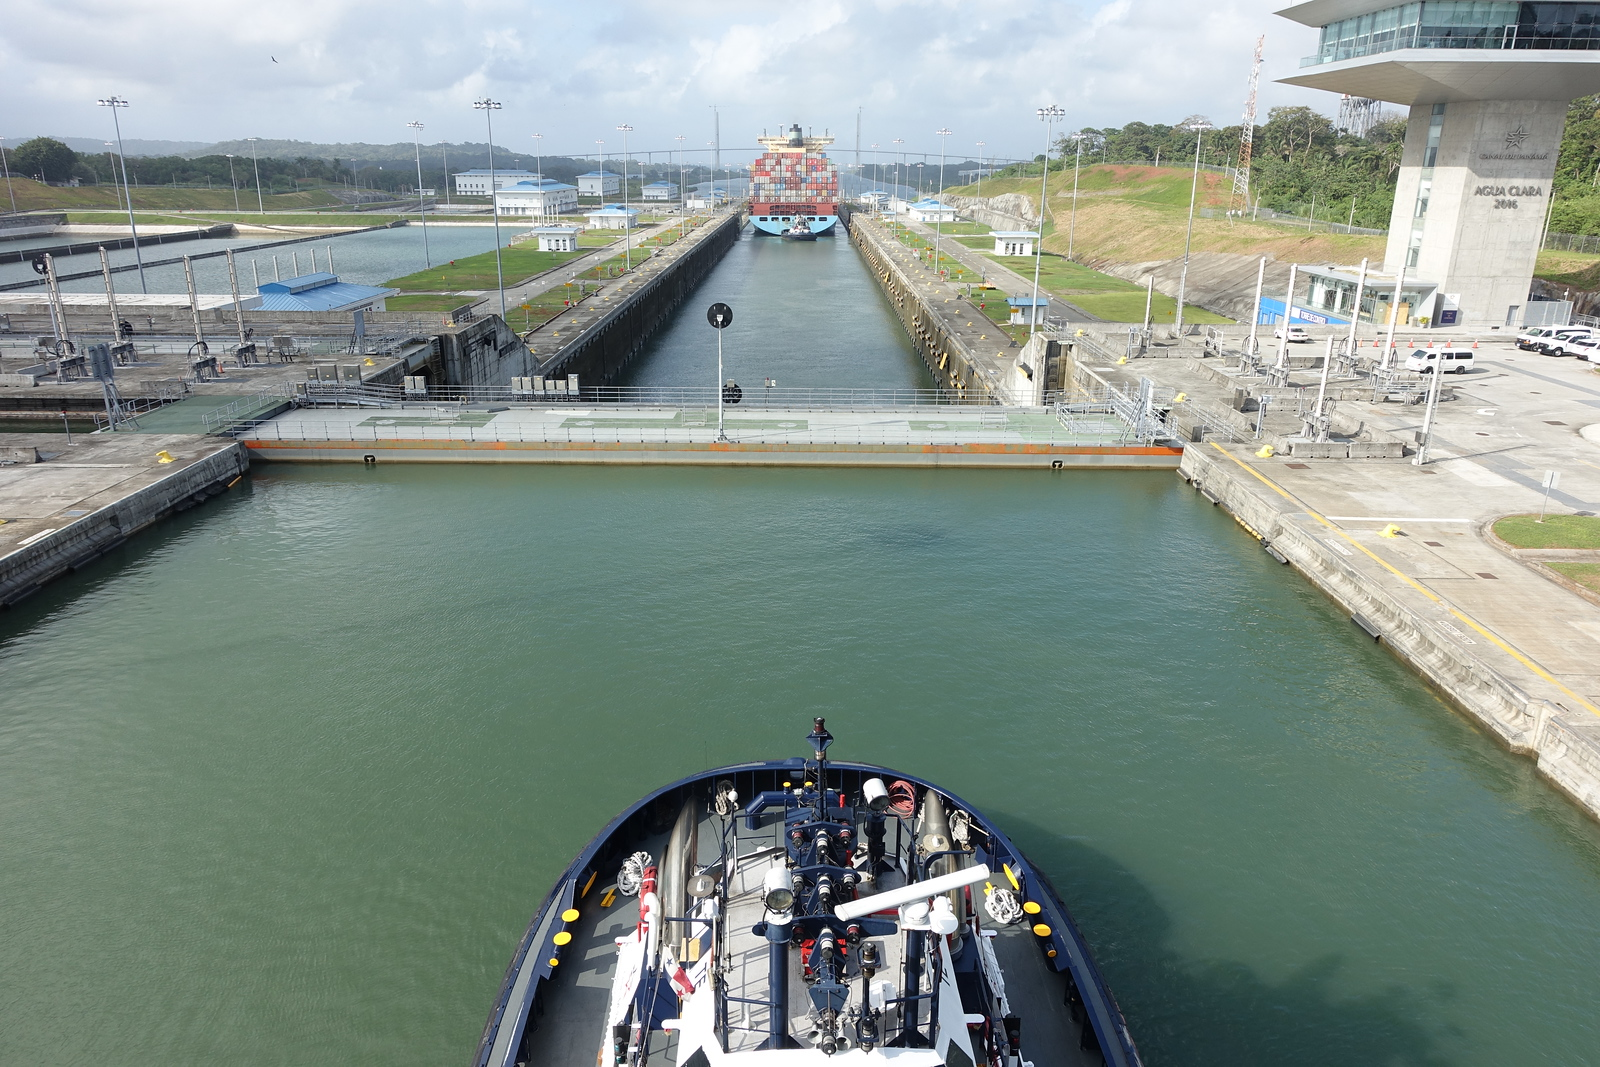 Return Visit Back Through Panama Canal (3 Locks)